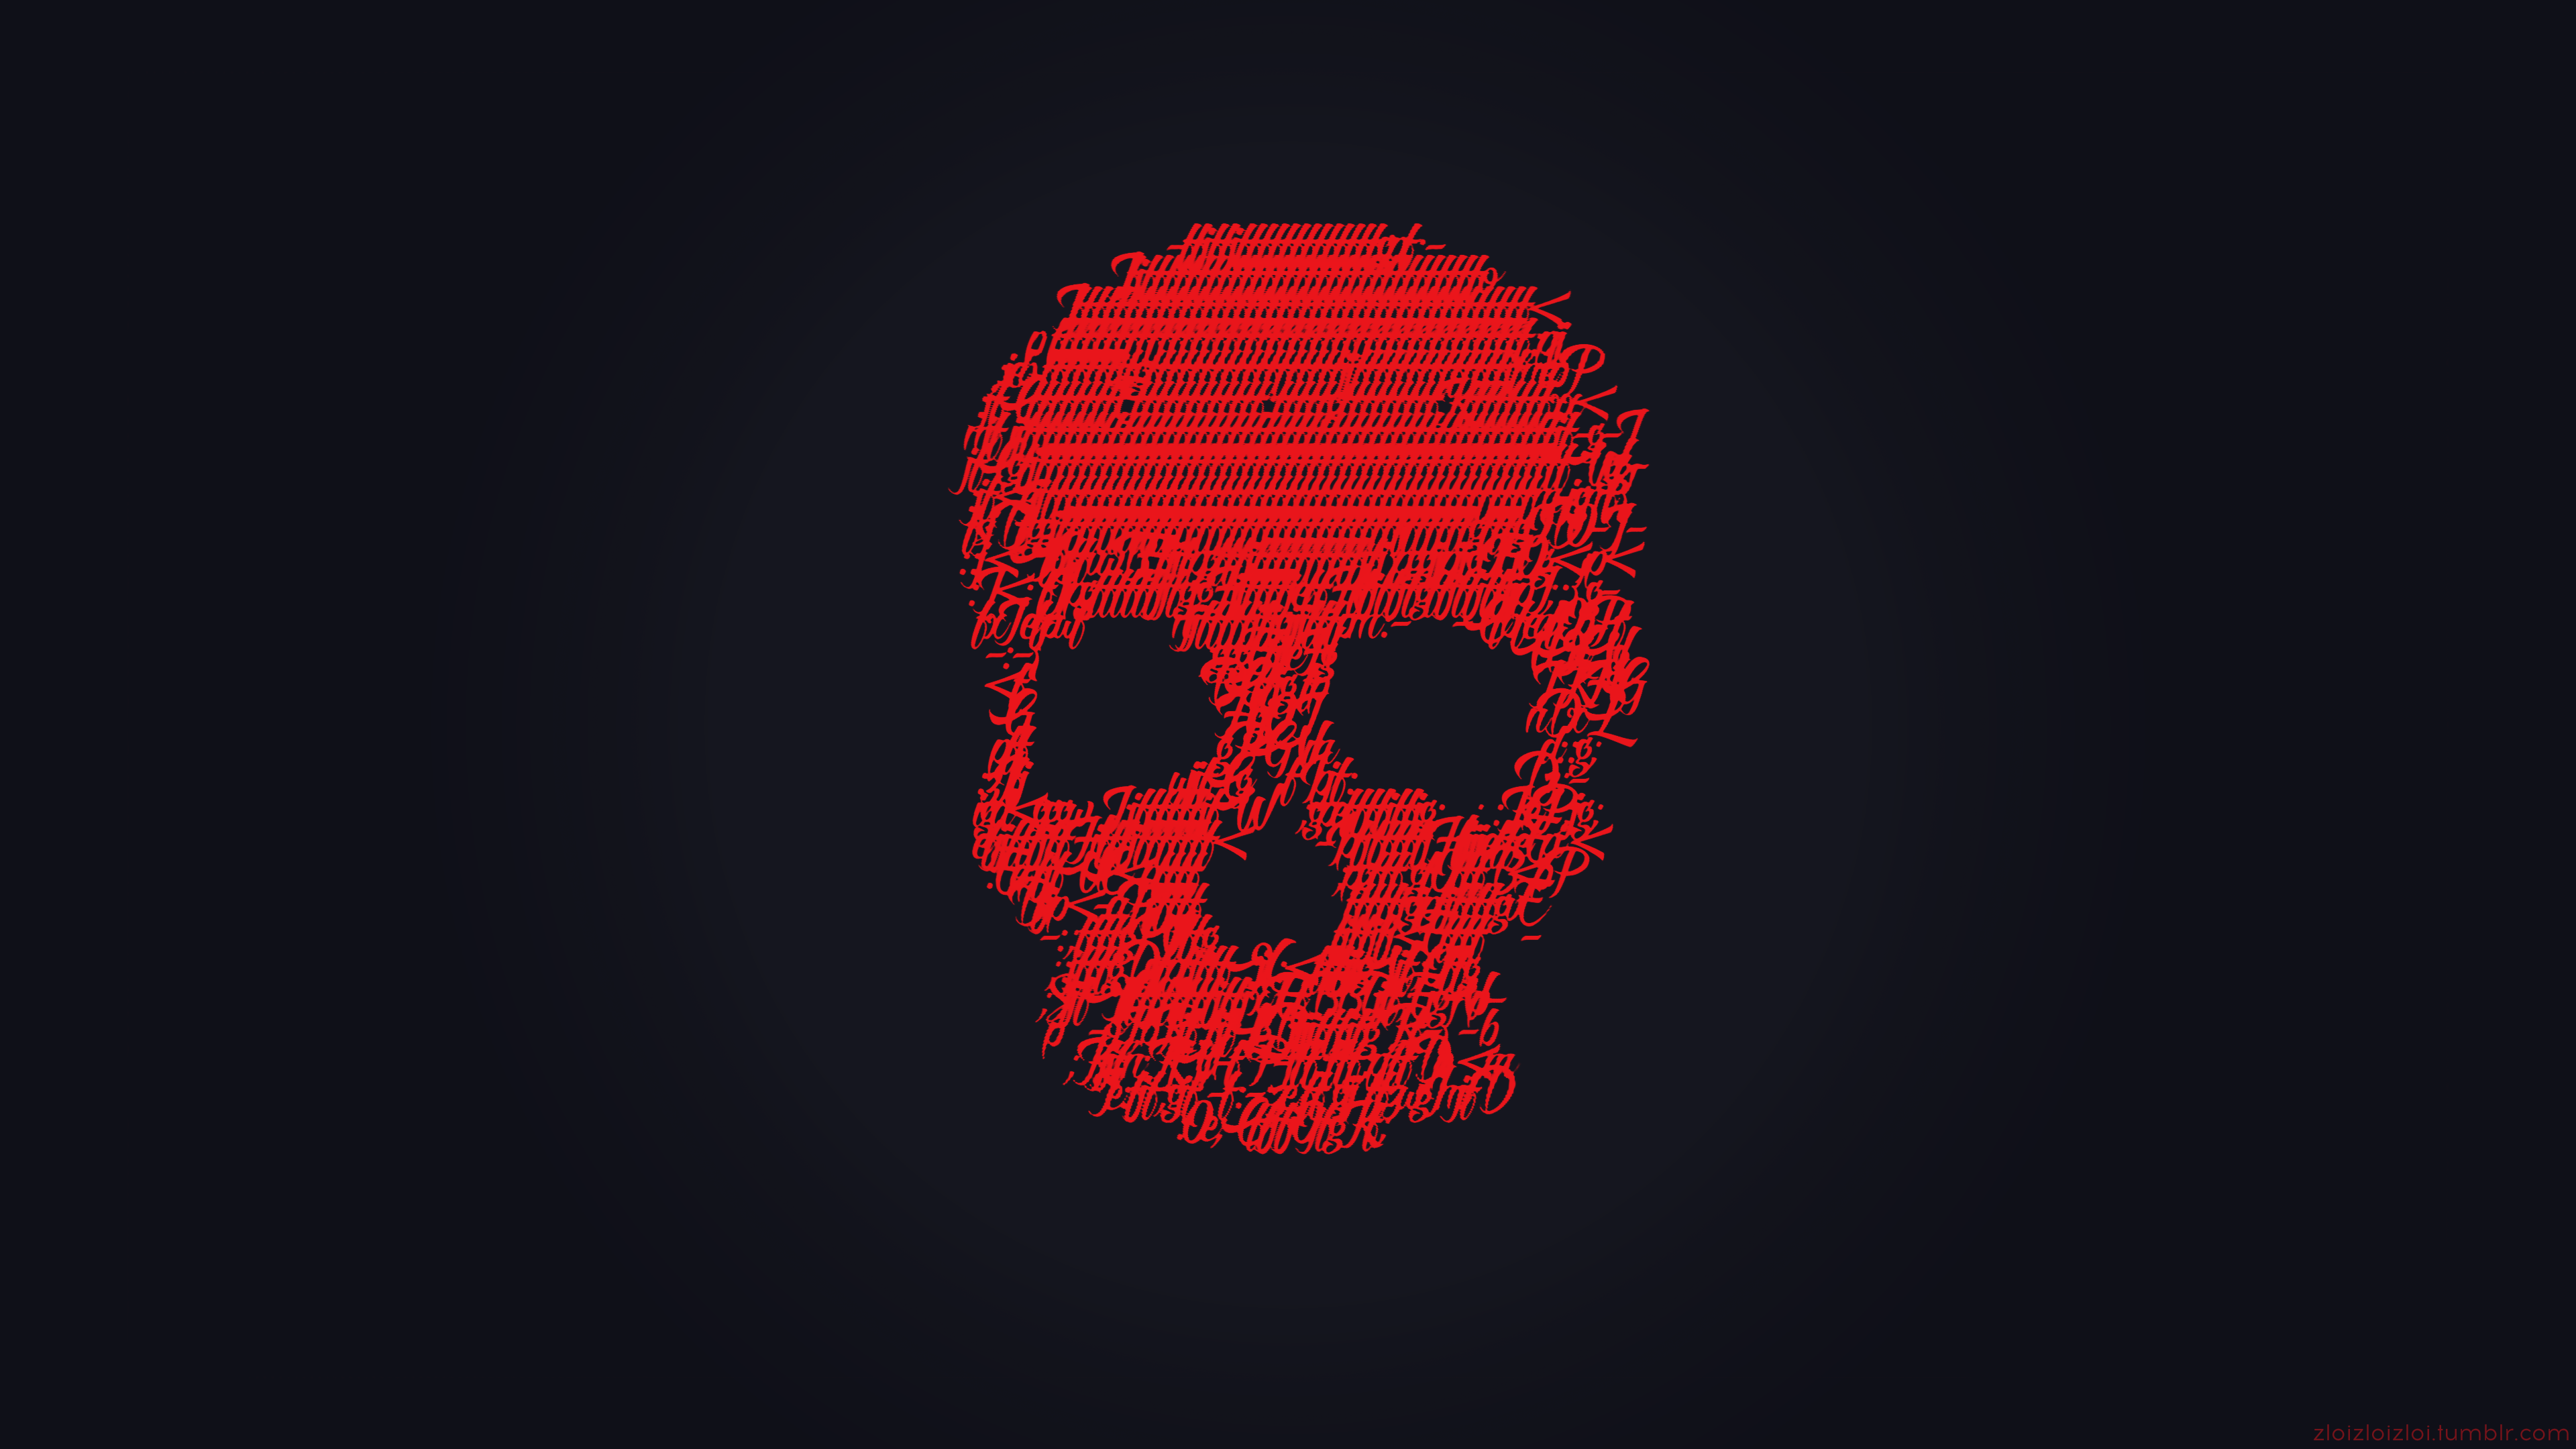 Red Skull Ascii 3840x2160 Investified Is A Blog For People Passionate About Business Investments Finance Skull Wallpaper Glitch Art Glitch Wallpaper